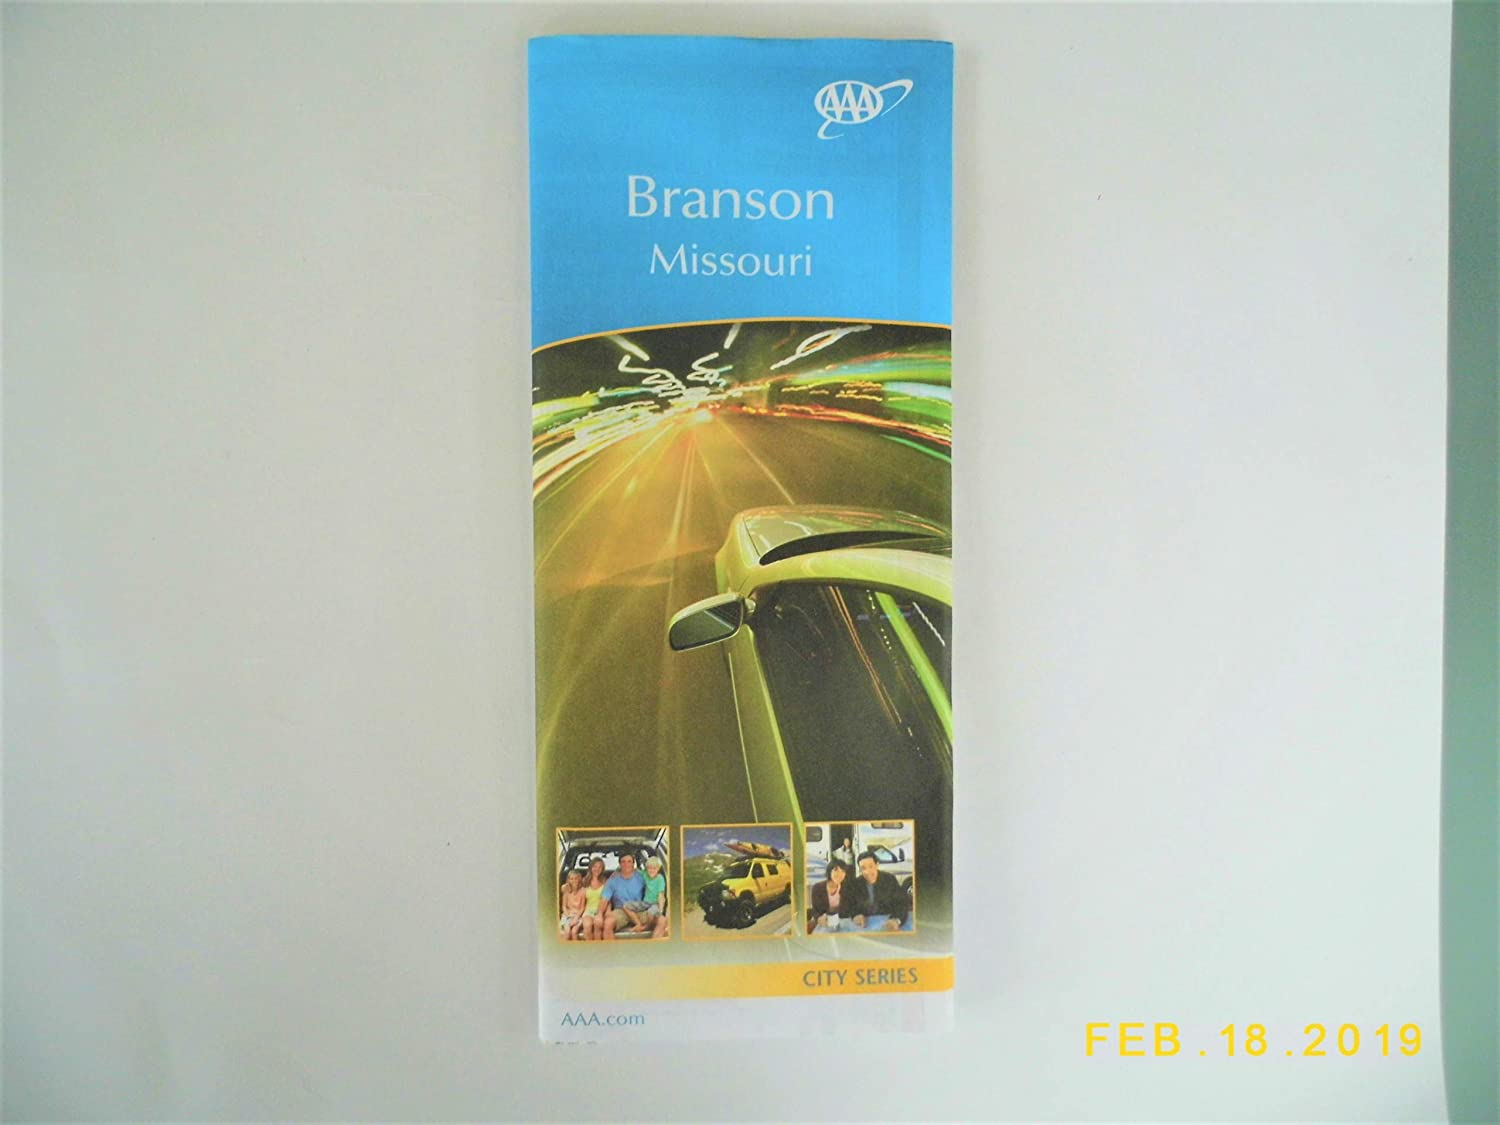 AAA Travel Map Branson Missouri City Series 5/17-8/19